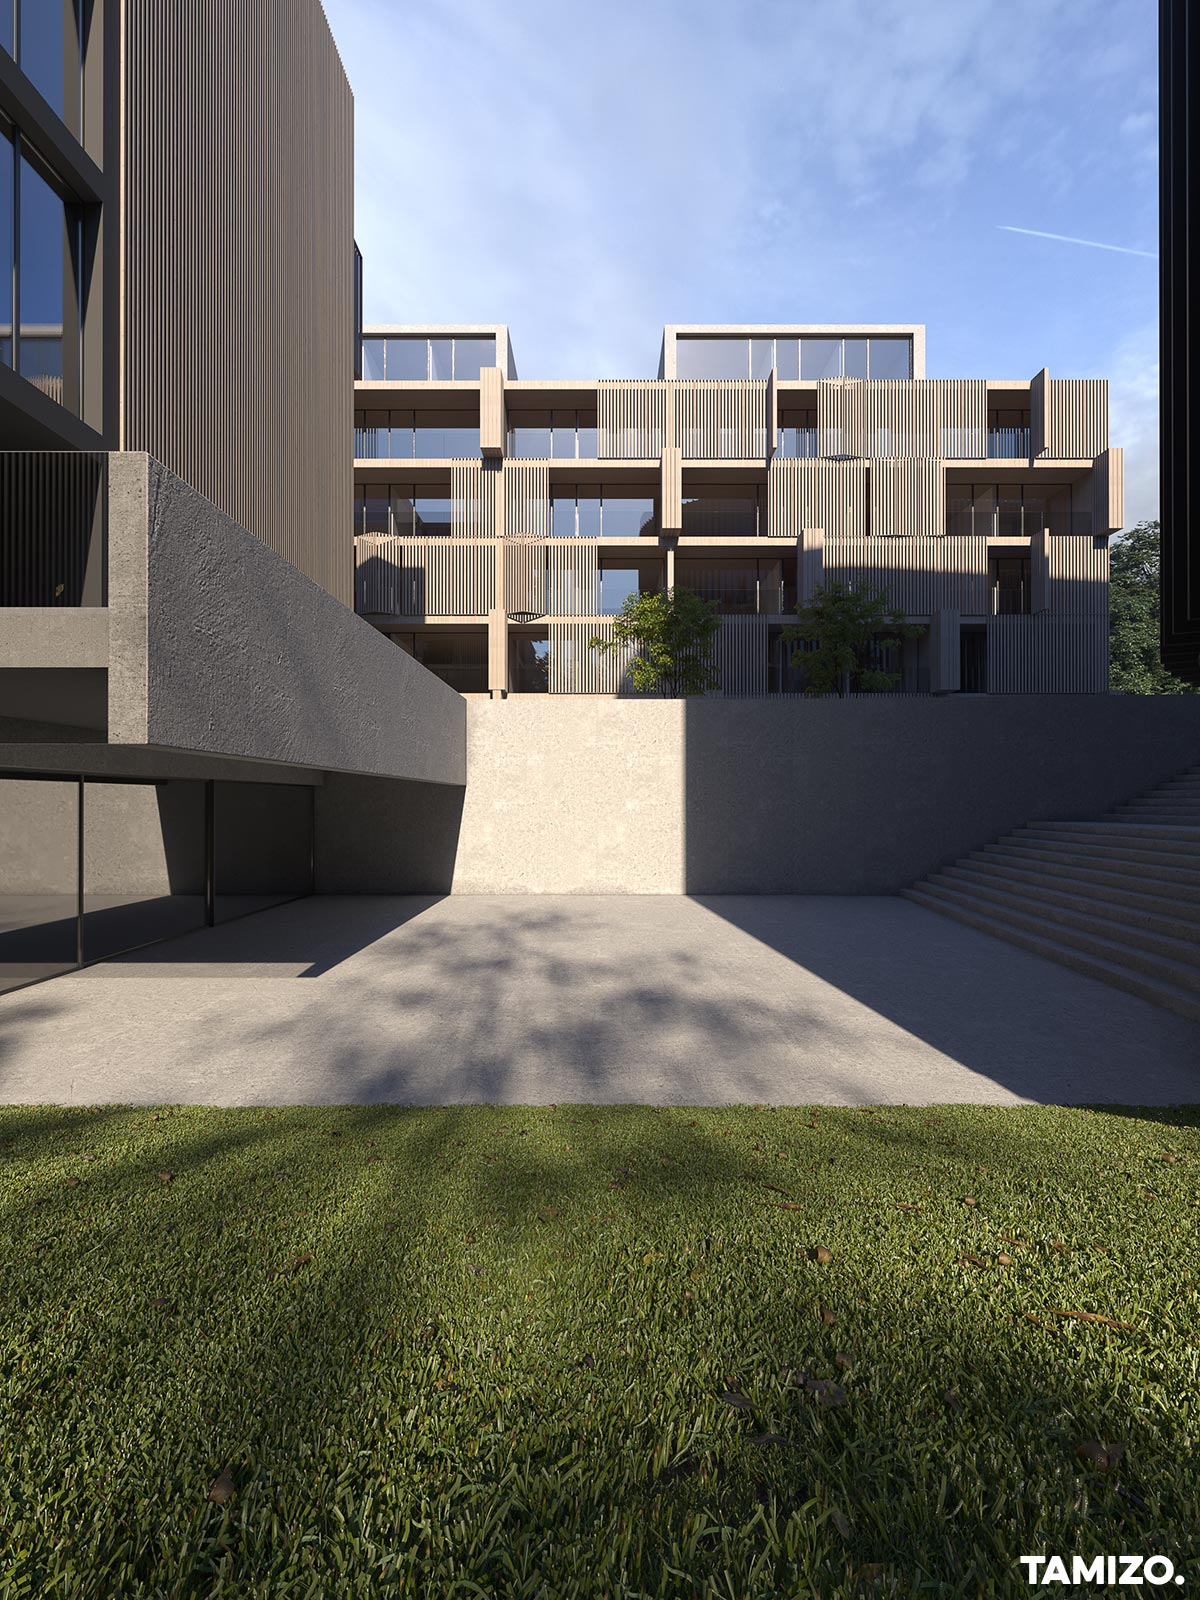 tamizo_architecture_houseing_mieszkaniowa_architektura_biura_office_builidng_lodz_08